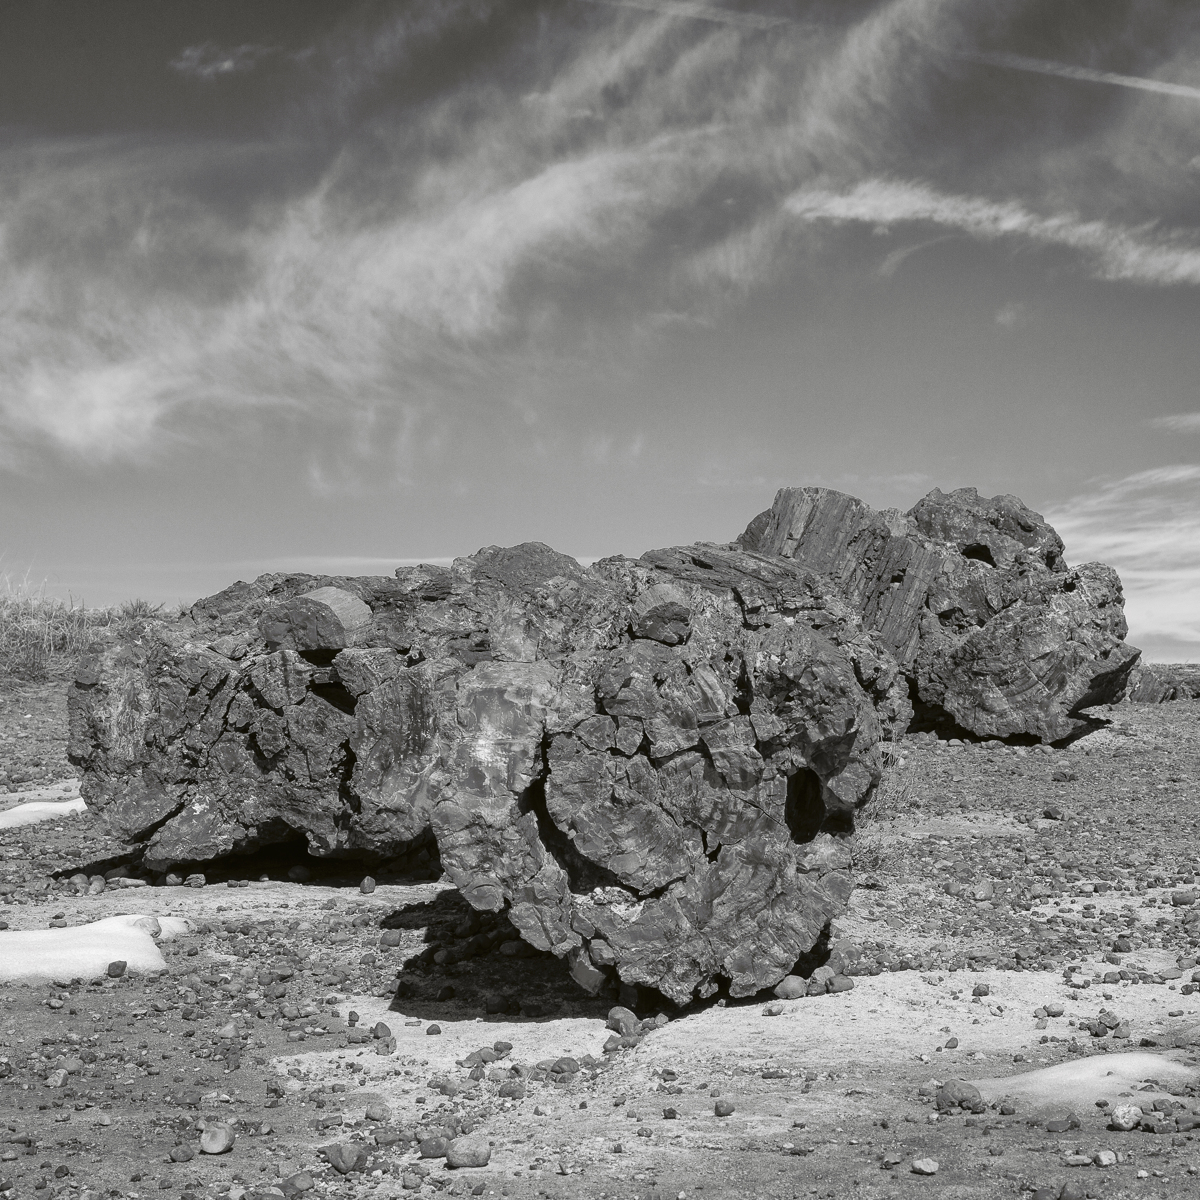 Giant Logs - 2139, Petrified National Forest, AZ (large view)